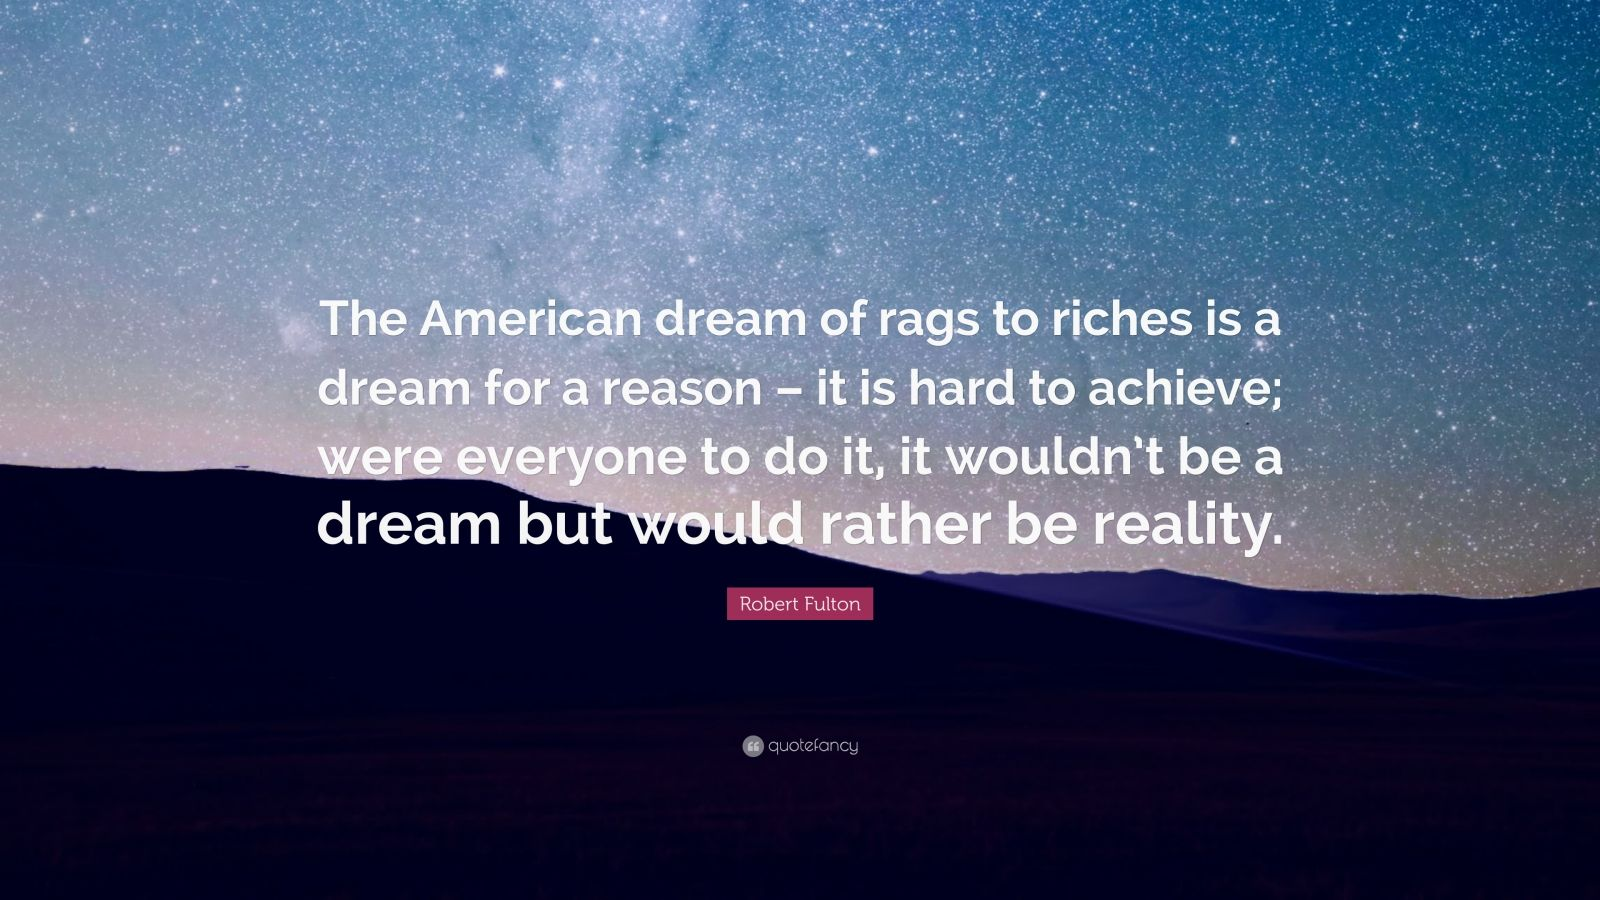 Achieve Quotes Wallpaper Robert Fulton Quote The American Dream Of Rags To Riches